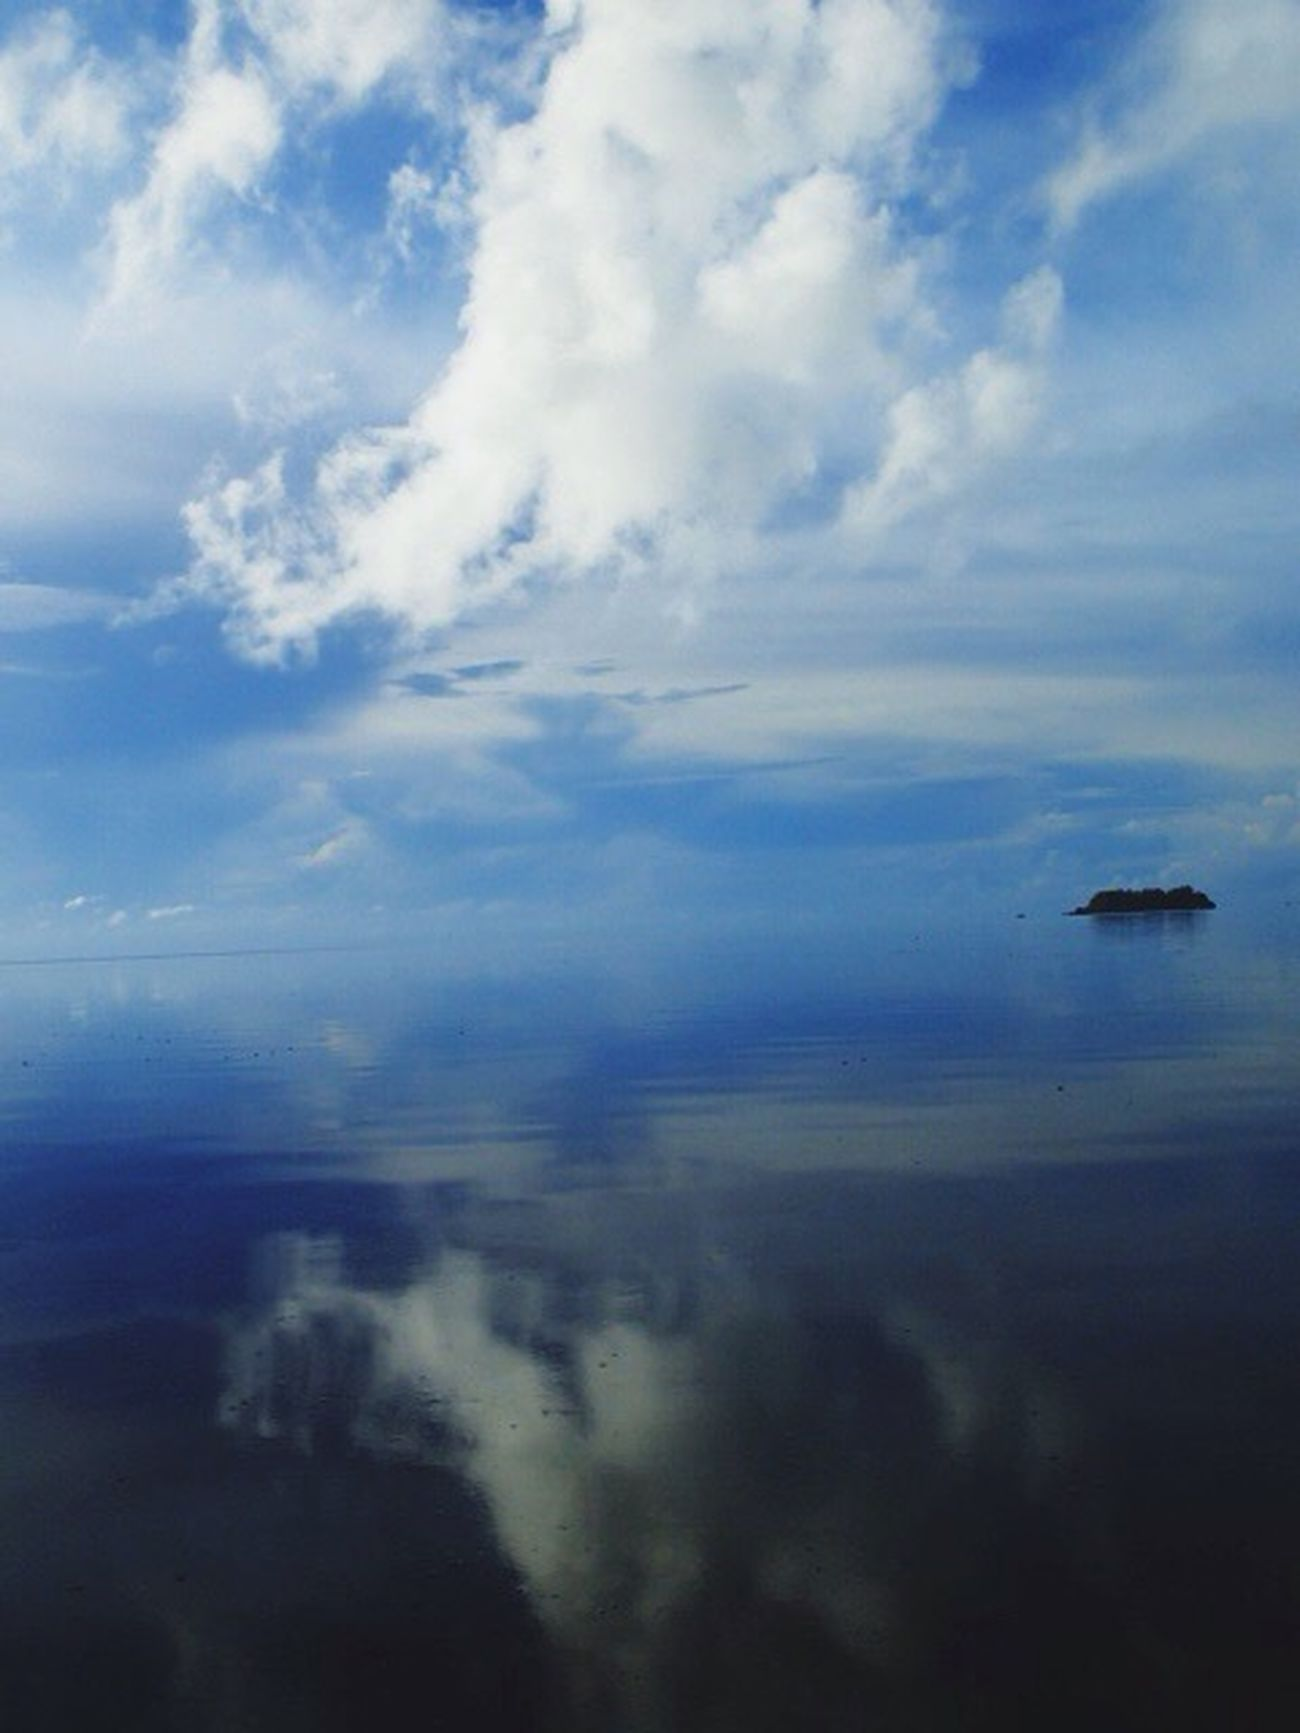 Clouds And Sky Water Reflections Ocean View Pacific Ocean Island View  REPUBLIC OF PALAU Ngercheu Carp Island Resort summer of 2014, early morning cruising on kayak drifting in the sea, where sky blends with sea , Palau, the rainbow's end ✌️